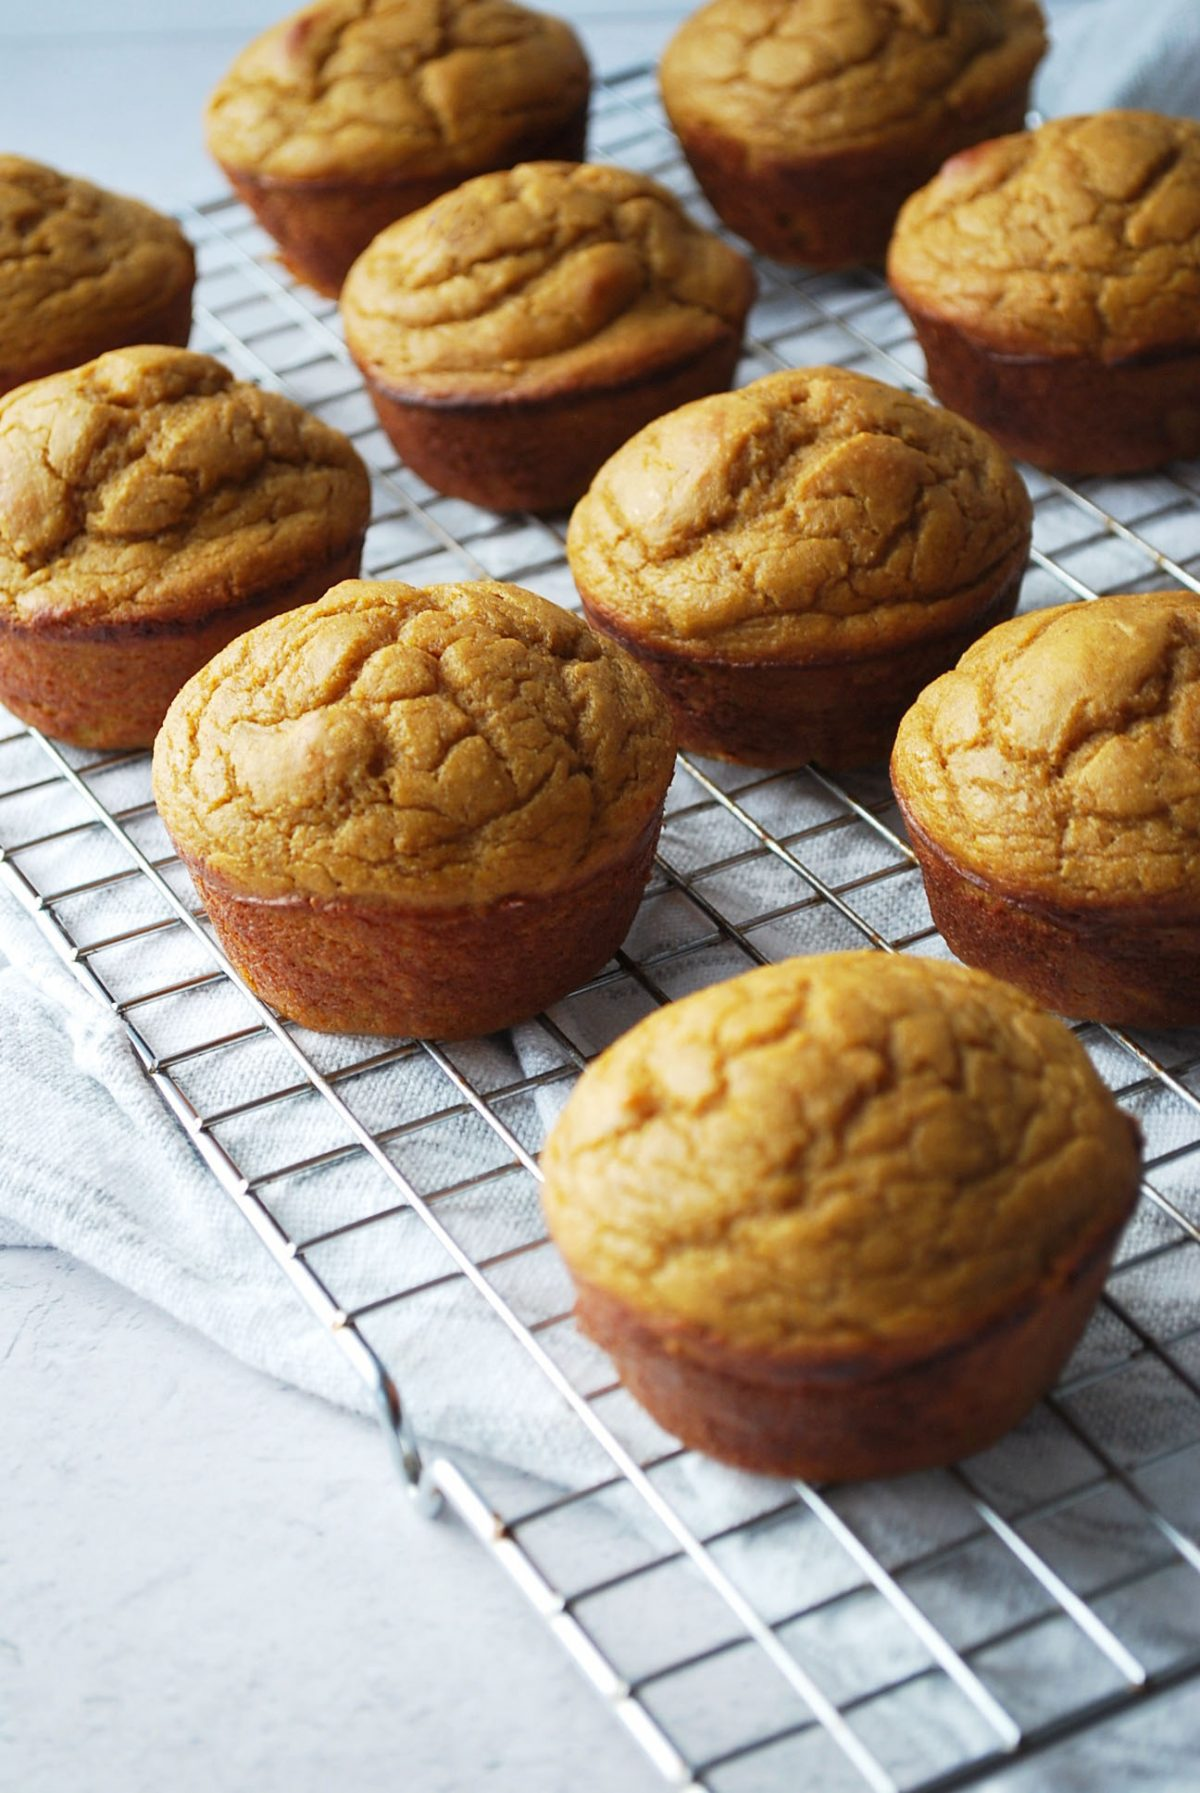 muffins on a cooling rack on top of a kitchen towel